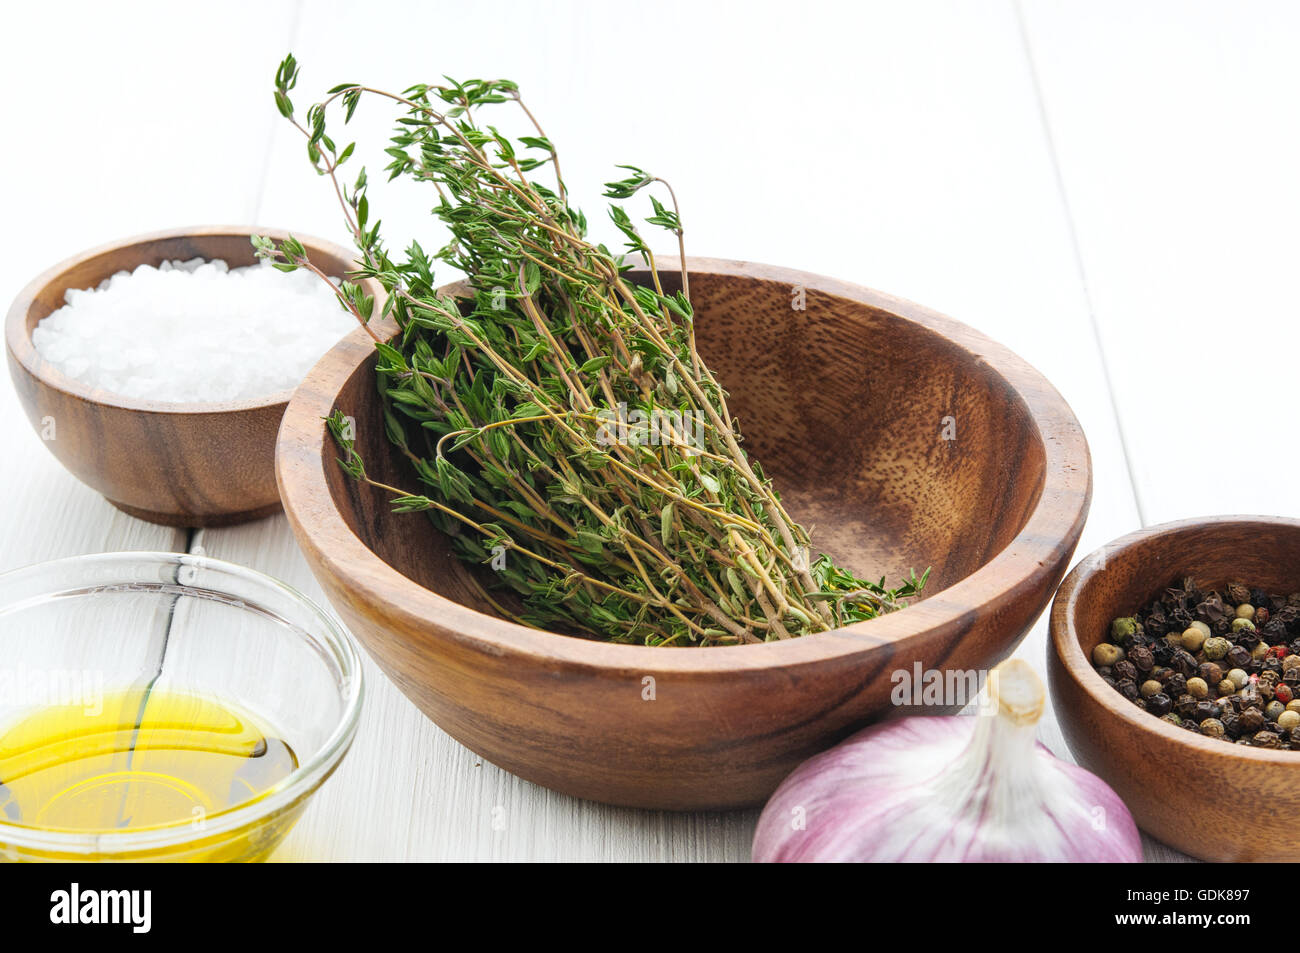 Cooking ingredients: thyme, salt, pepper, chili, garlic, olive oil in Stock  Photo - Alamy